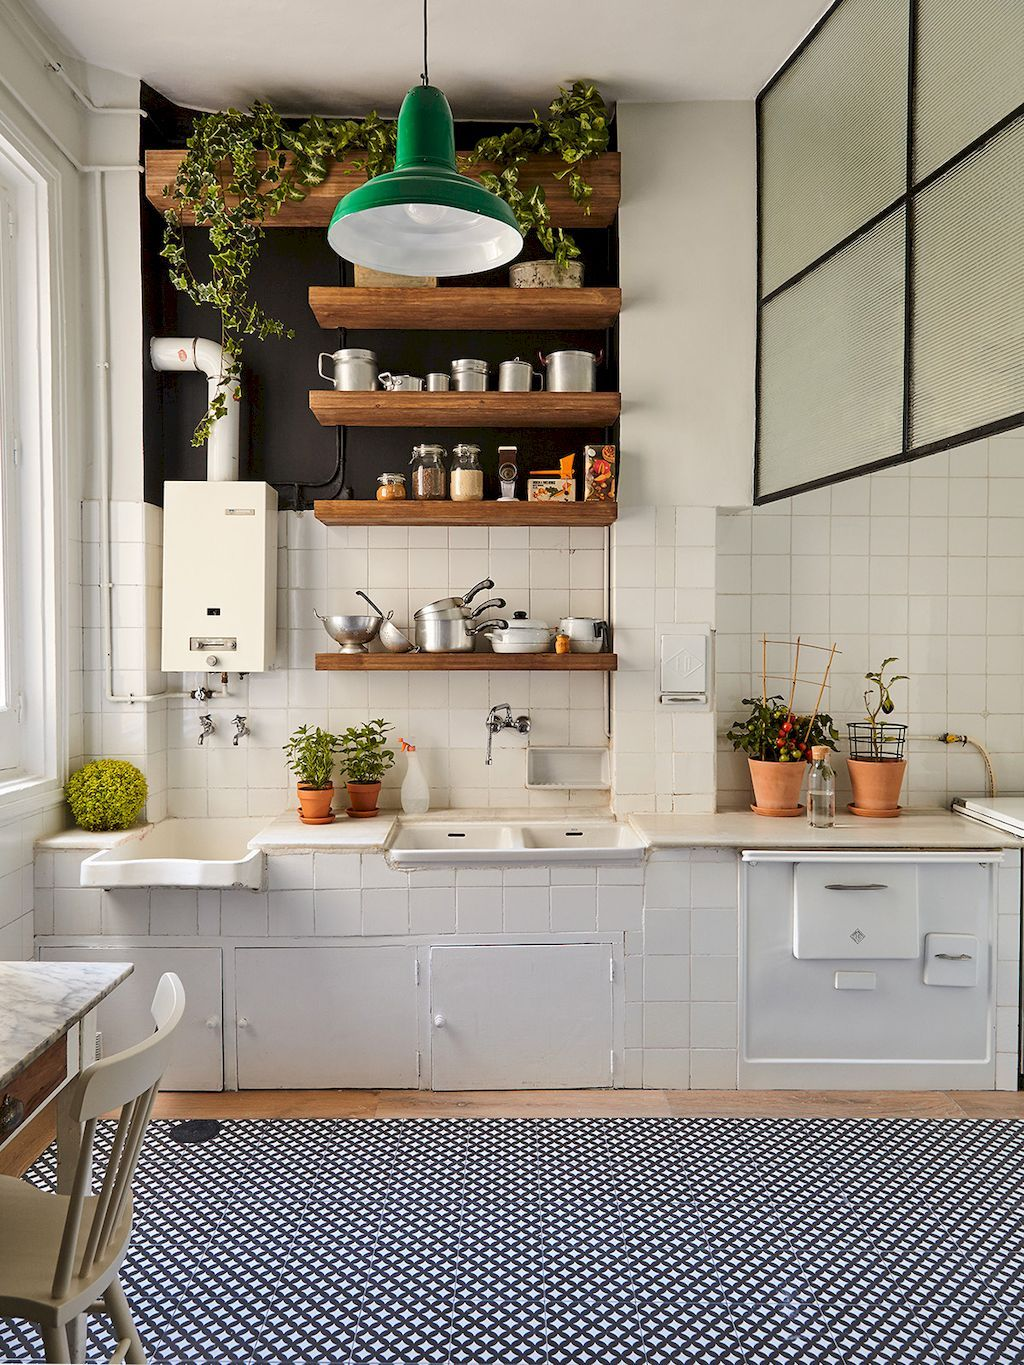 Cool 70 Cool Modern Apartment Kitchen Decor Ideas And Remodel  Https://worldecor.